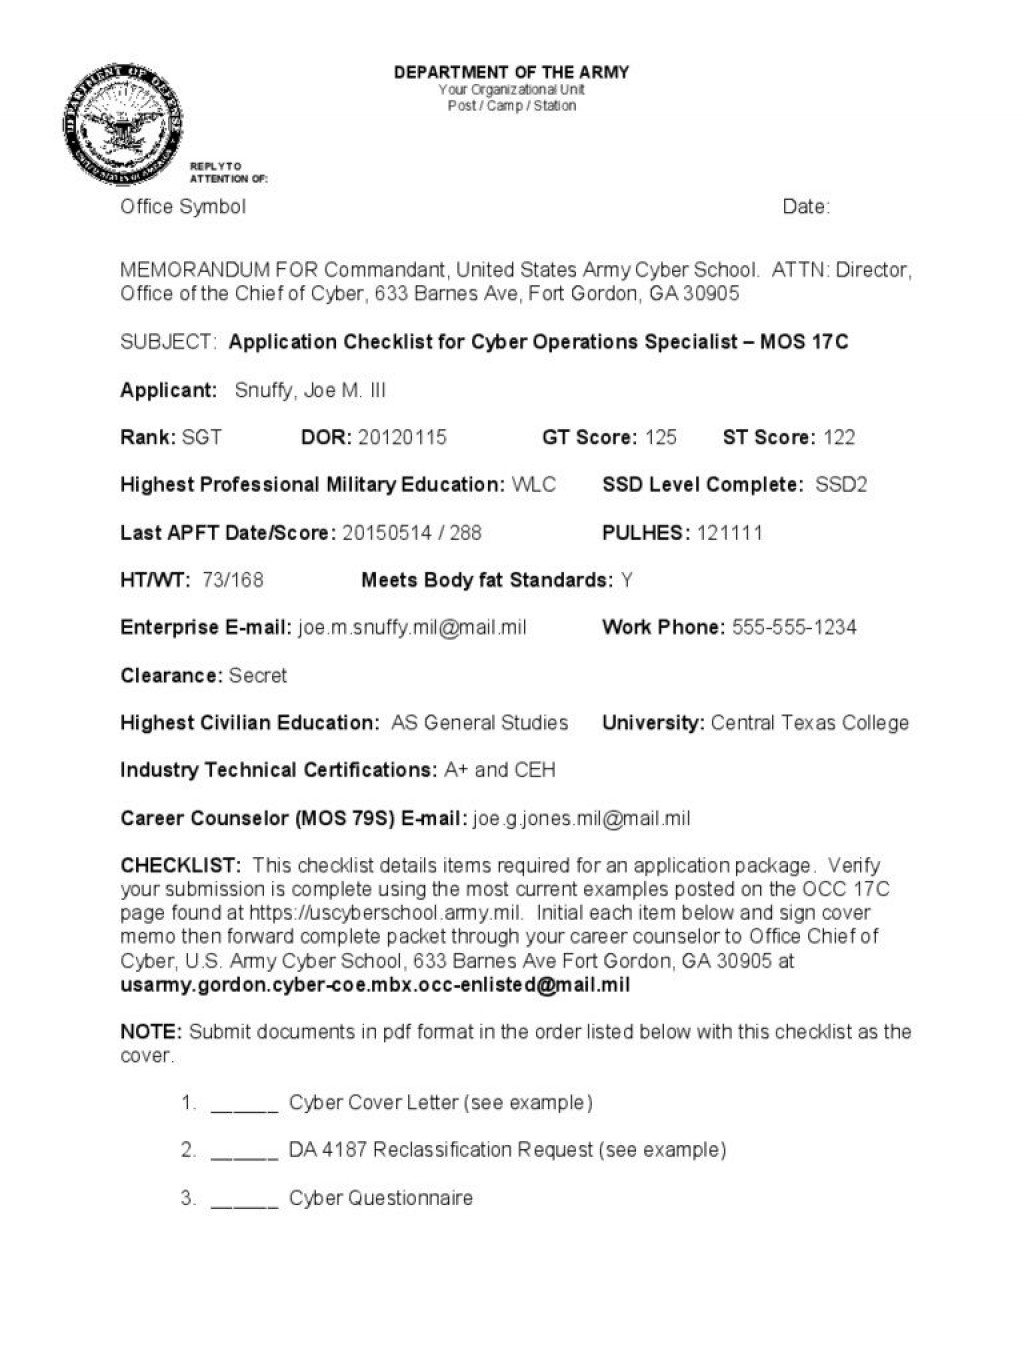 009 Frightening Memorandum For Record Template Sample  Army Pdf Fillable Example WlcLarge